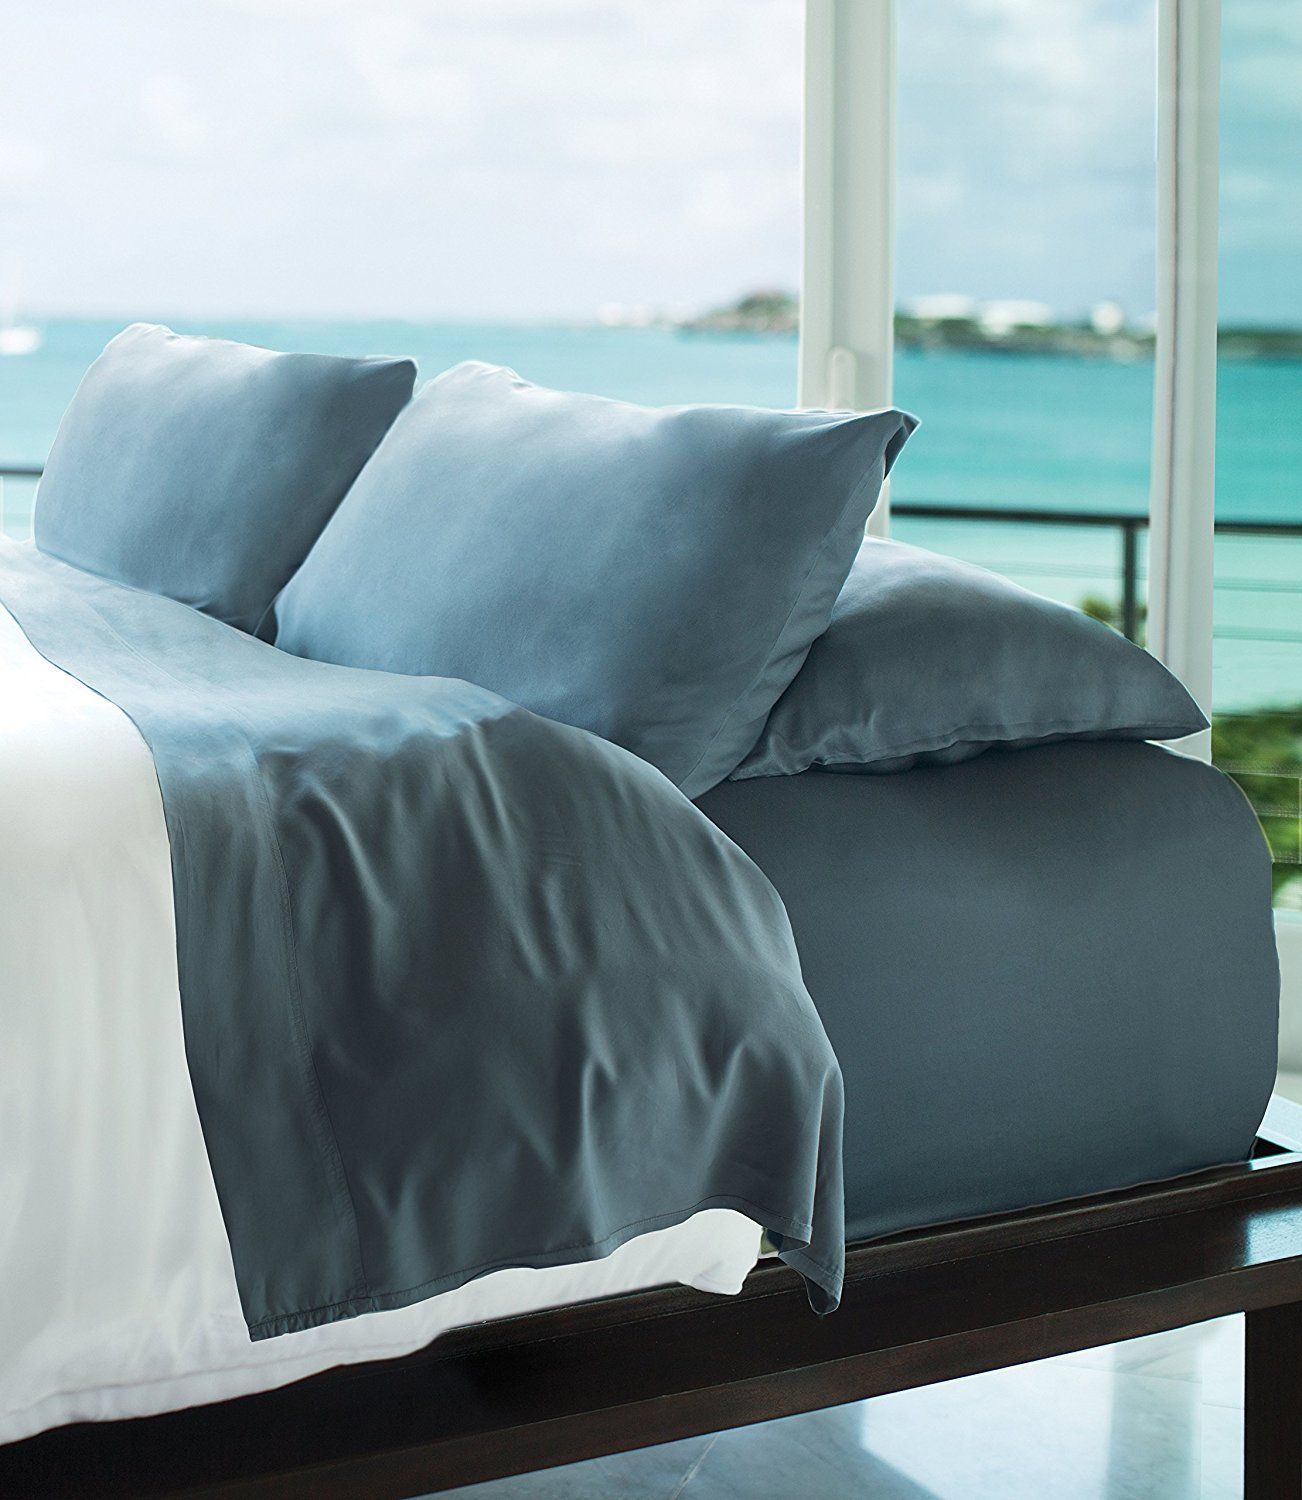 Most Comfortable Bed Sheets Softest Sheets To Buy Lux Comfy